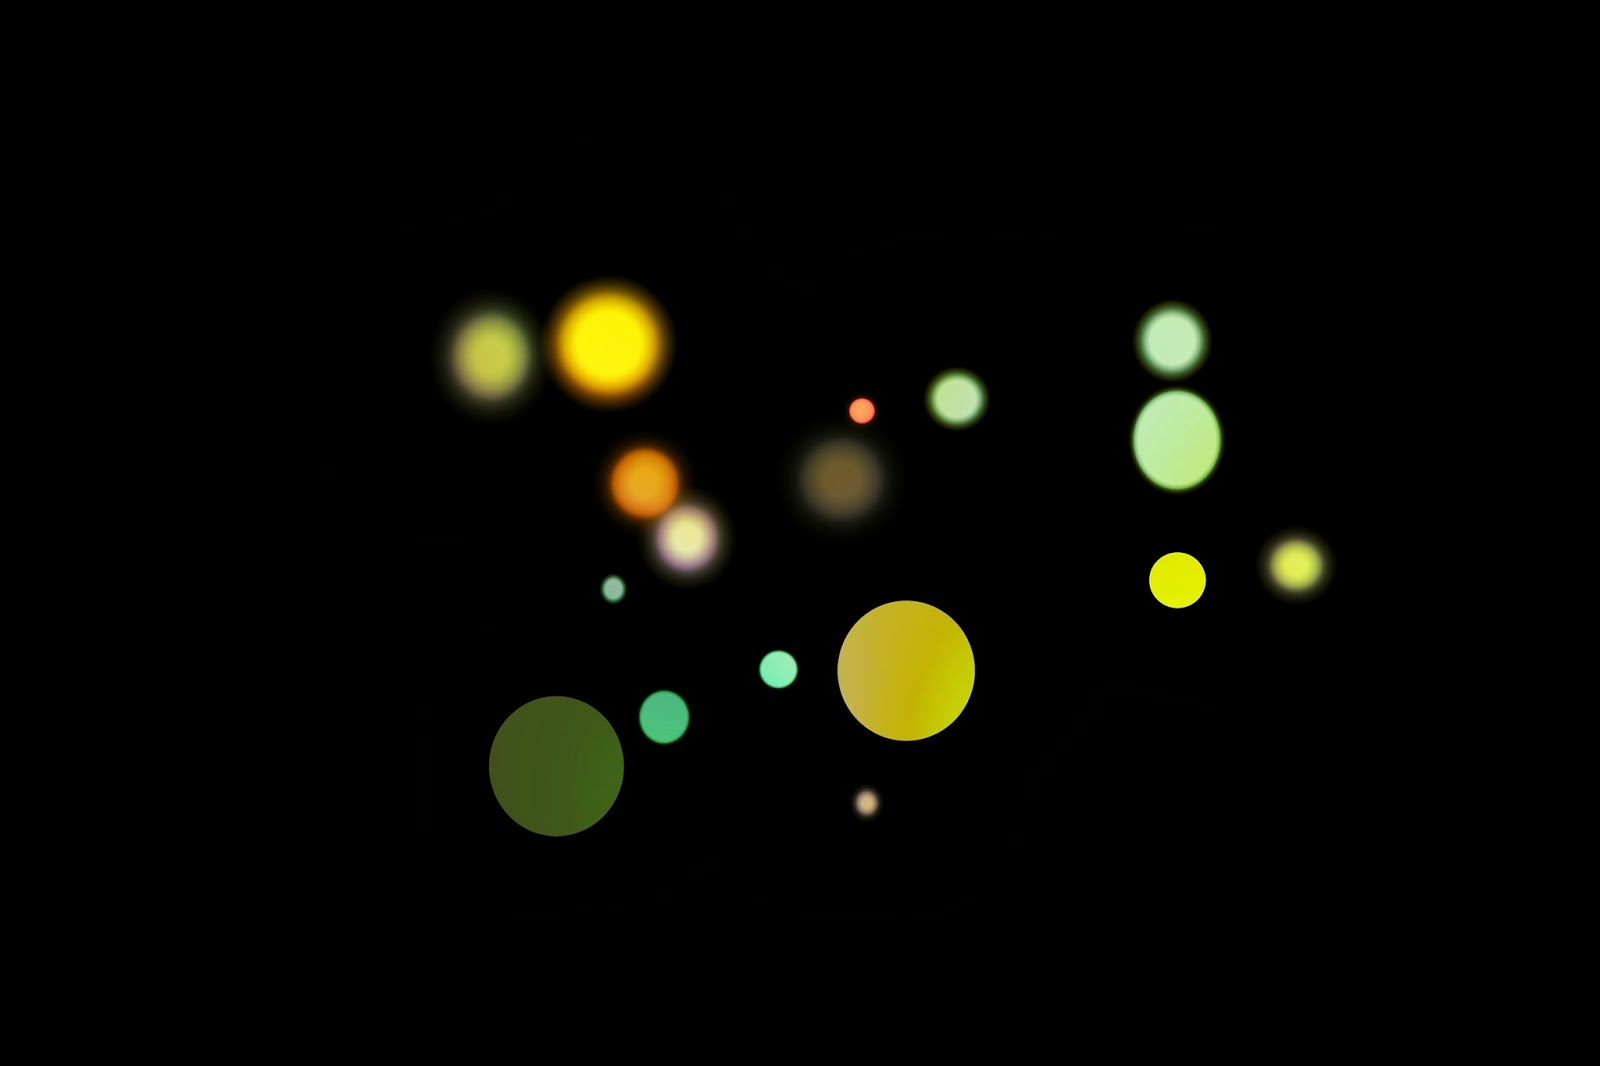 Download free bokeh brushes for photoshop cs6 adobe photoshop you might also like download free lightening brushes for photoshop cs6 baditri Images